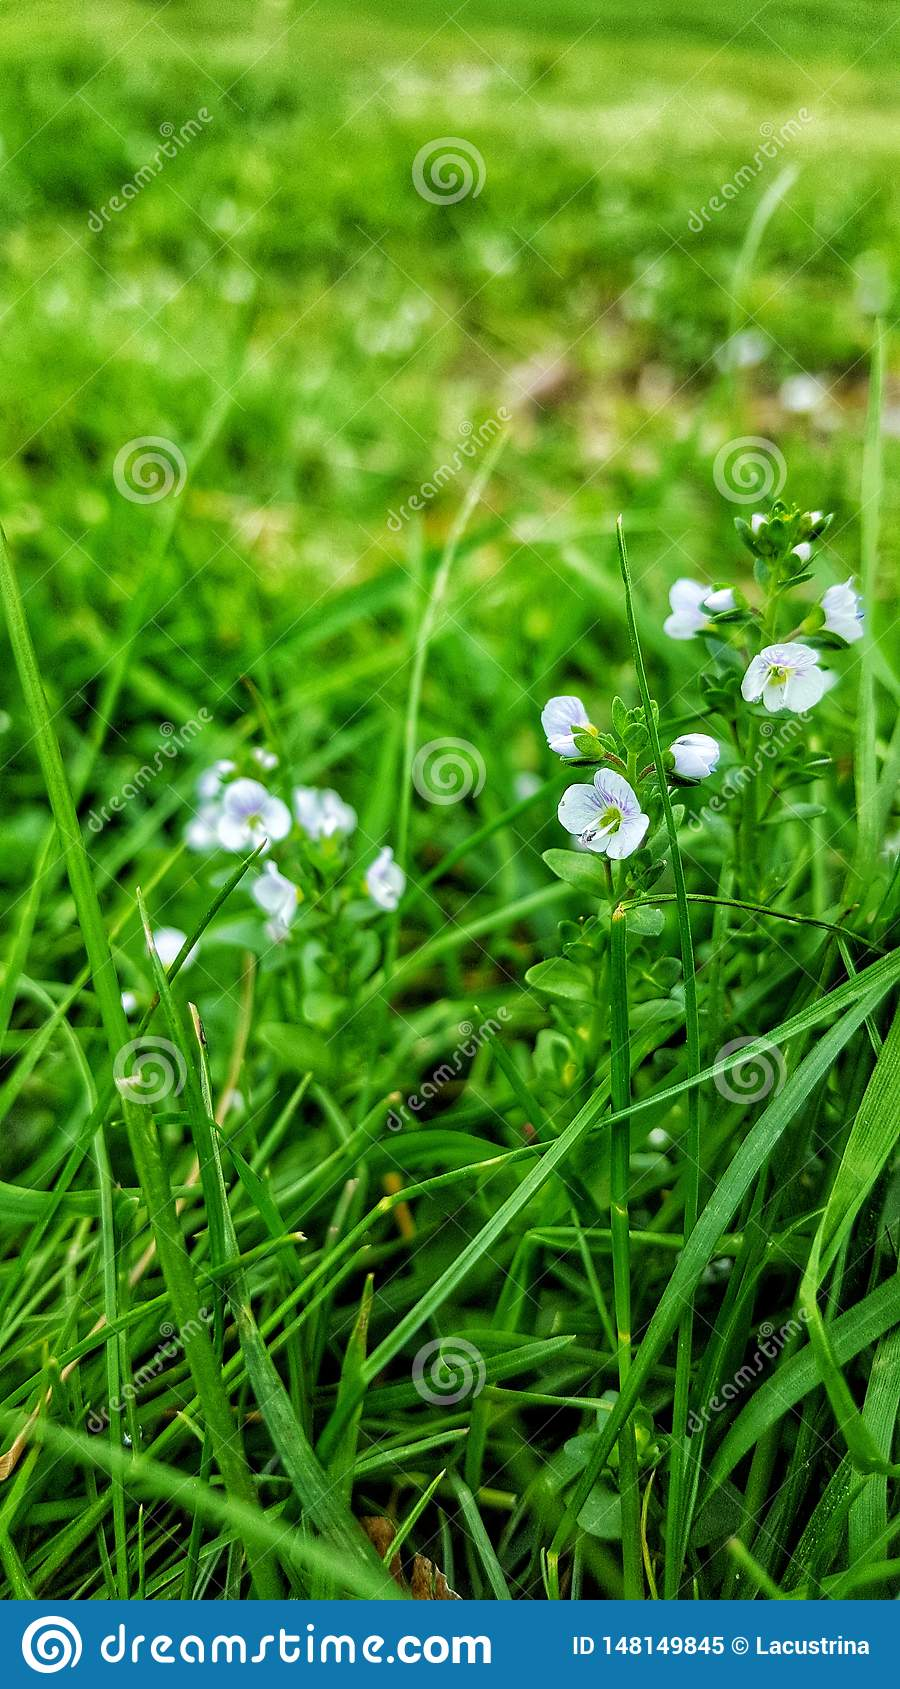 White delicate flowers on a field.